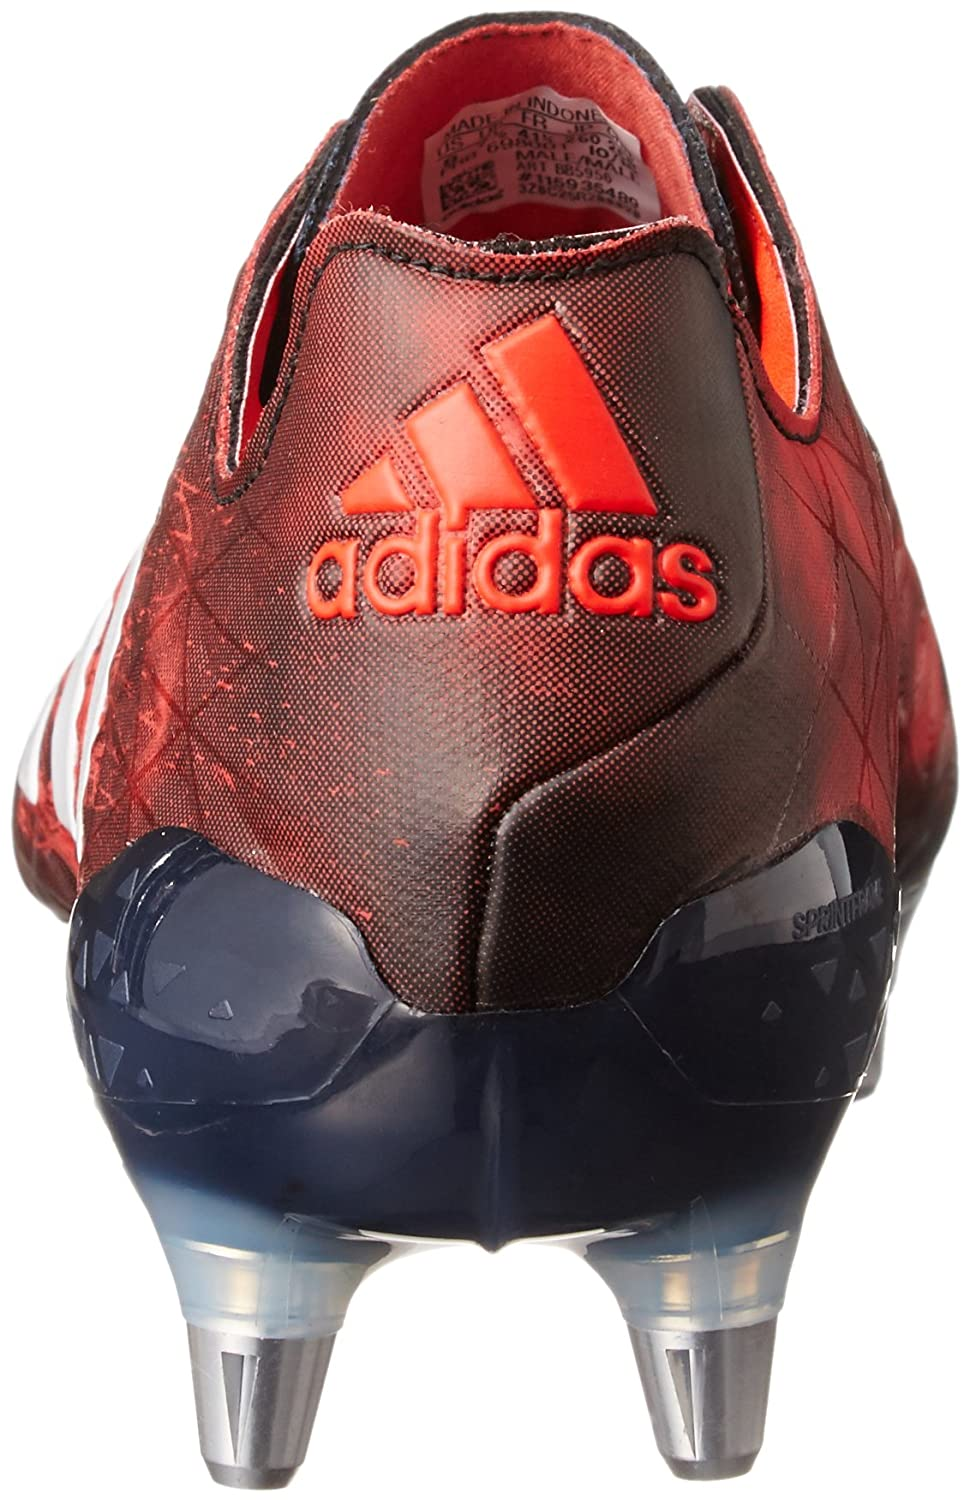 promo code b54b2 dff40 Amazon.com   adidas SS17 Kakari Light SG Rugby Boots   Rugby